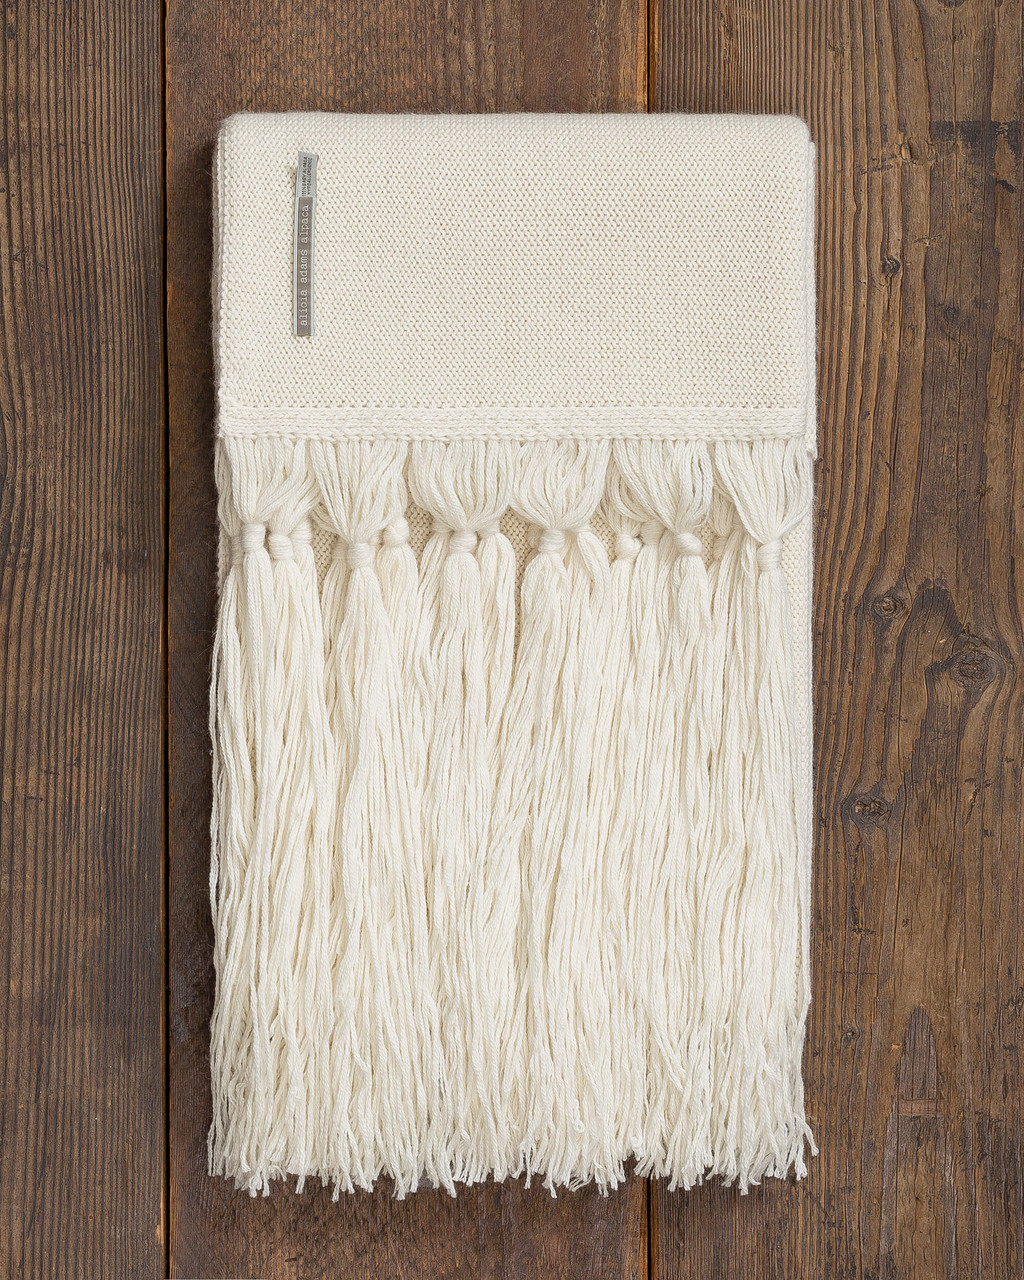 Alicia Adams Alpaca Cayman Throw, open weave alpaca throw blanket with tassels, alpaca throw, alpaca vs cashmere, ivory white alpaca throw